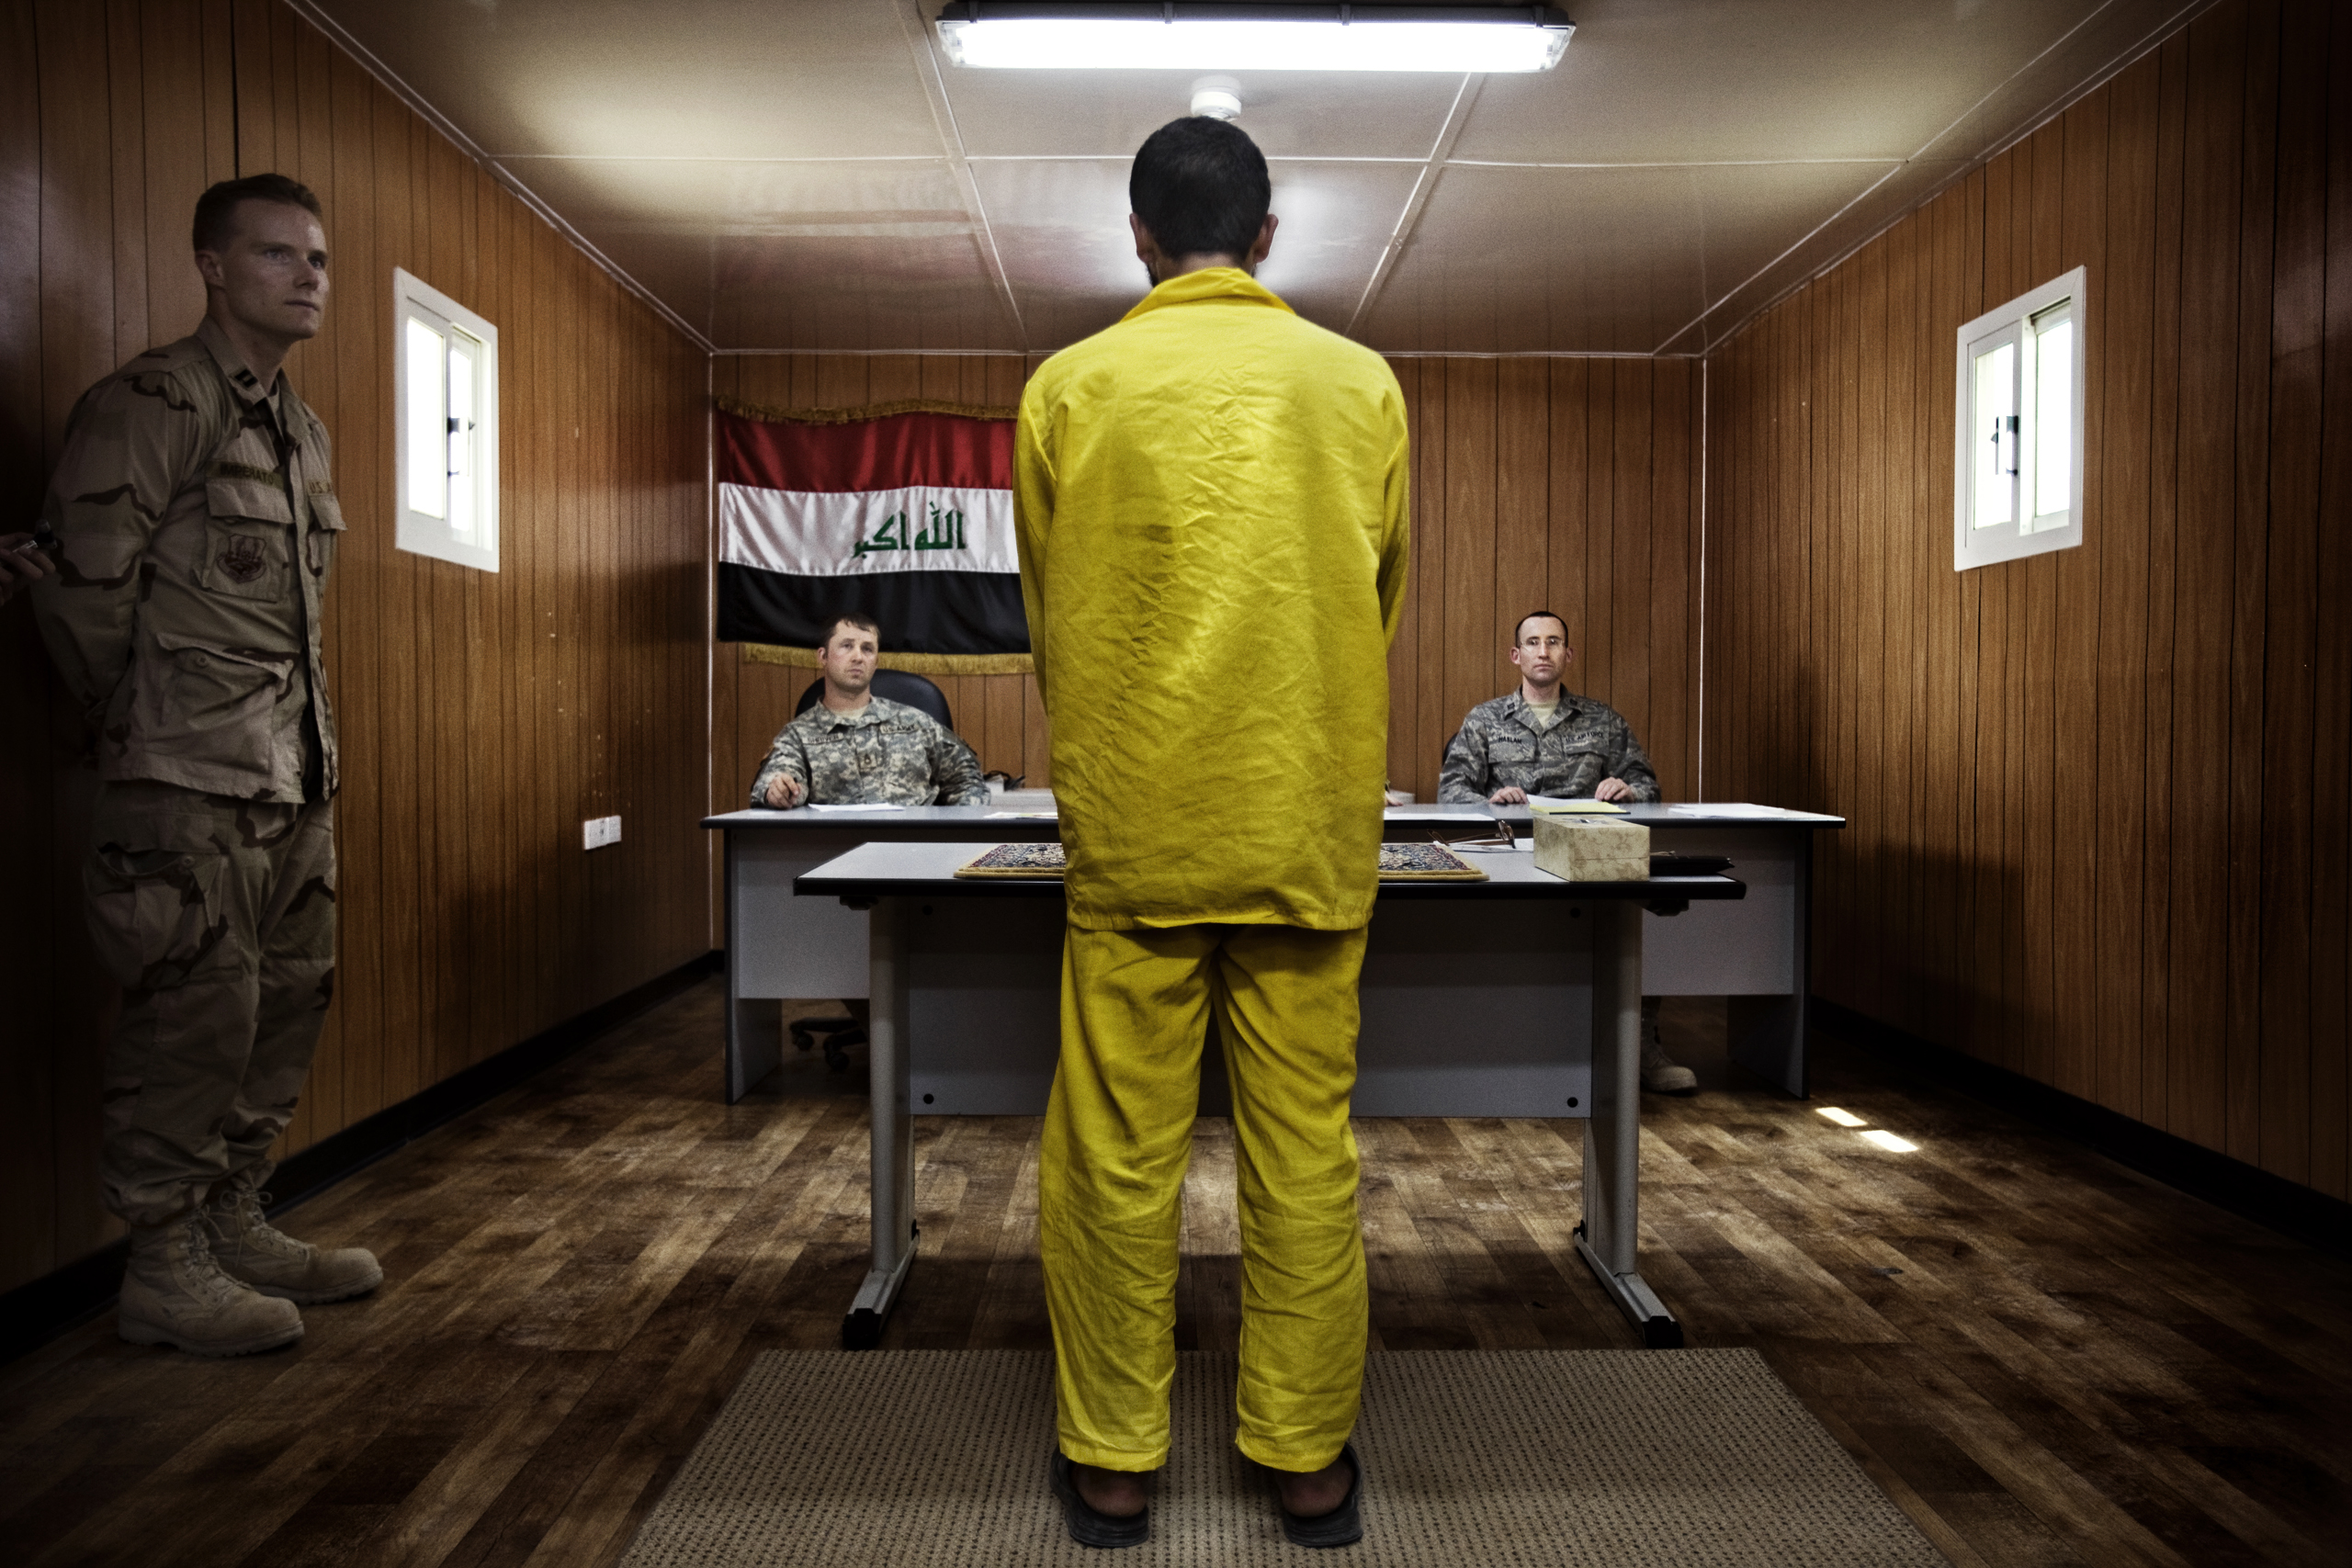 A panel of three American military officers question an Iraqi detainee at Camp Cropper, a U.S. military detention facility in Baghdad,  July, 26, 2008. Just under 21,000 Iraqis were held by the U.S. military, outside of the Iraqi justice system, under terms laid out by a U.N. mandate.